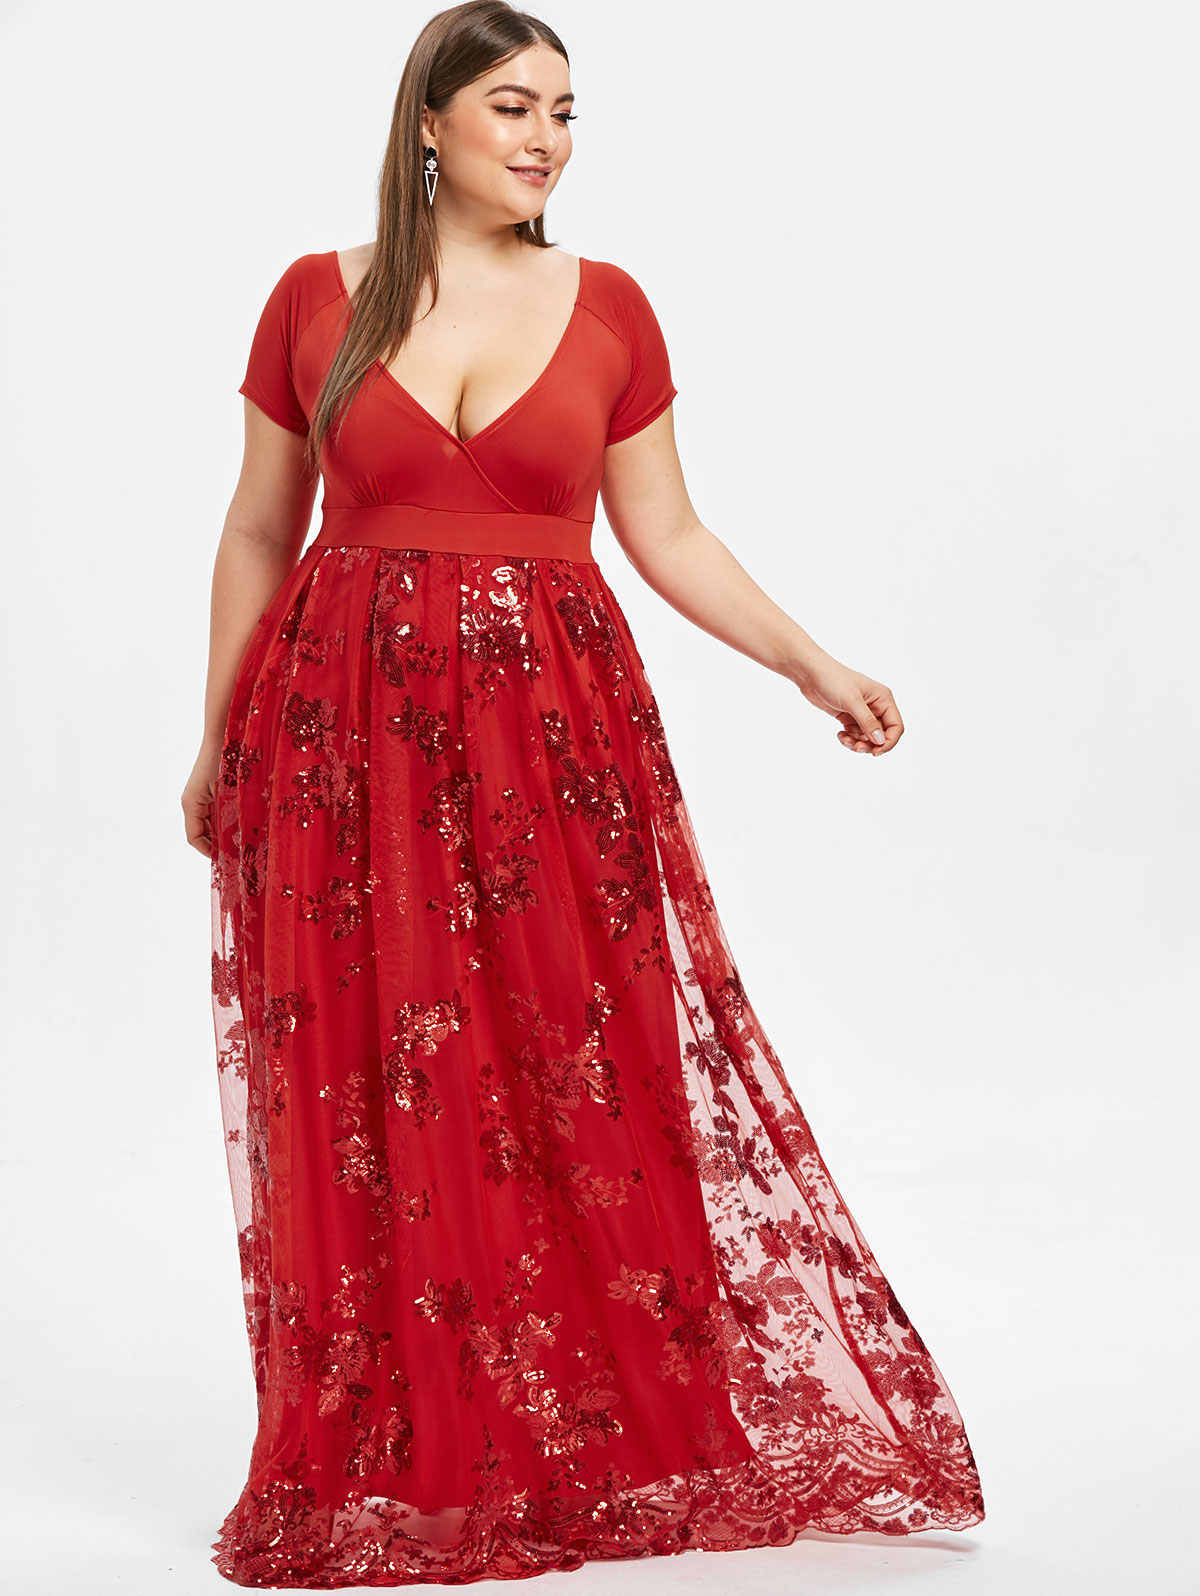 Wipalo Plus Size Dress Women Sexy Deep V Neck Short Sleeves Floral Sparkly  Maxi Dresses Elegant 01d4db4bbd12